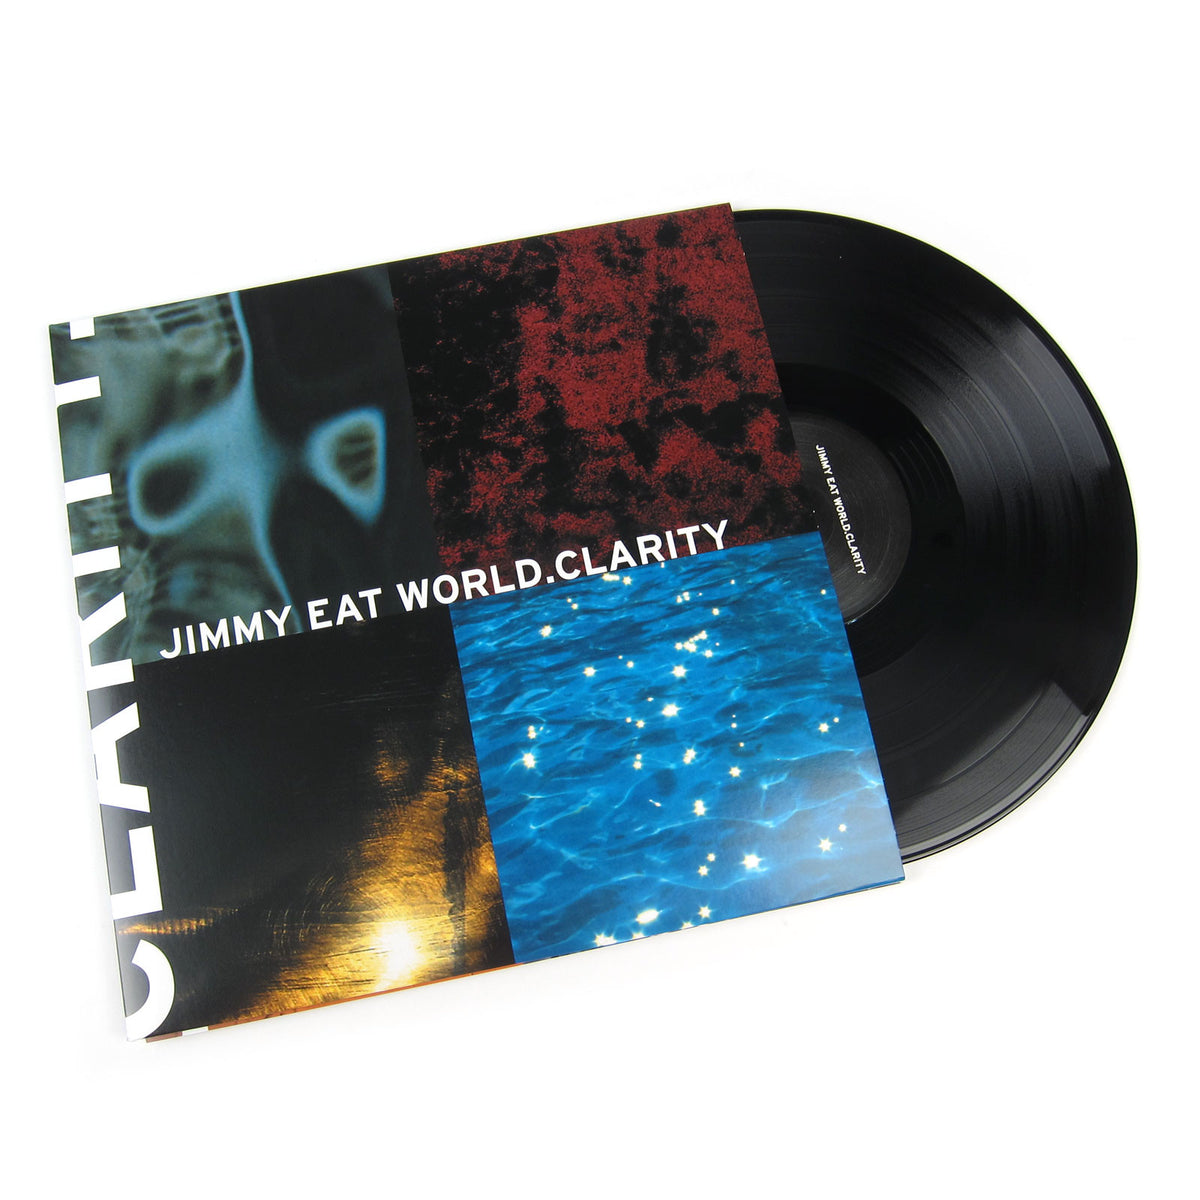 Jimmy Eat World: Clarity Vinyl 2LP